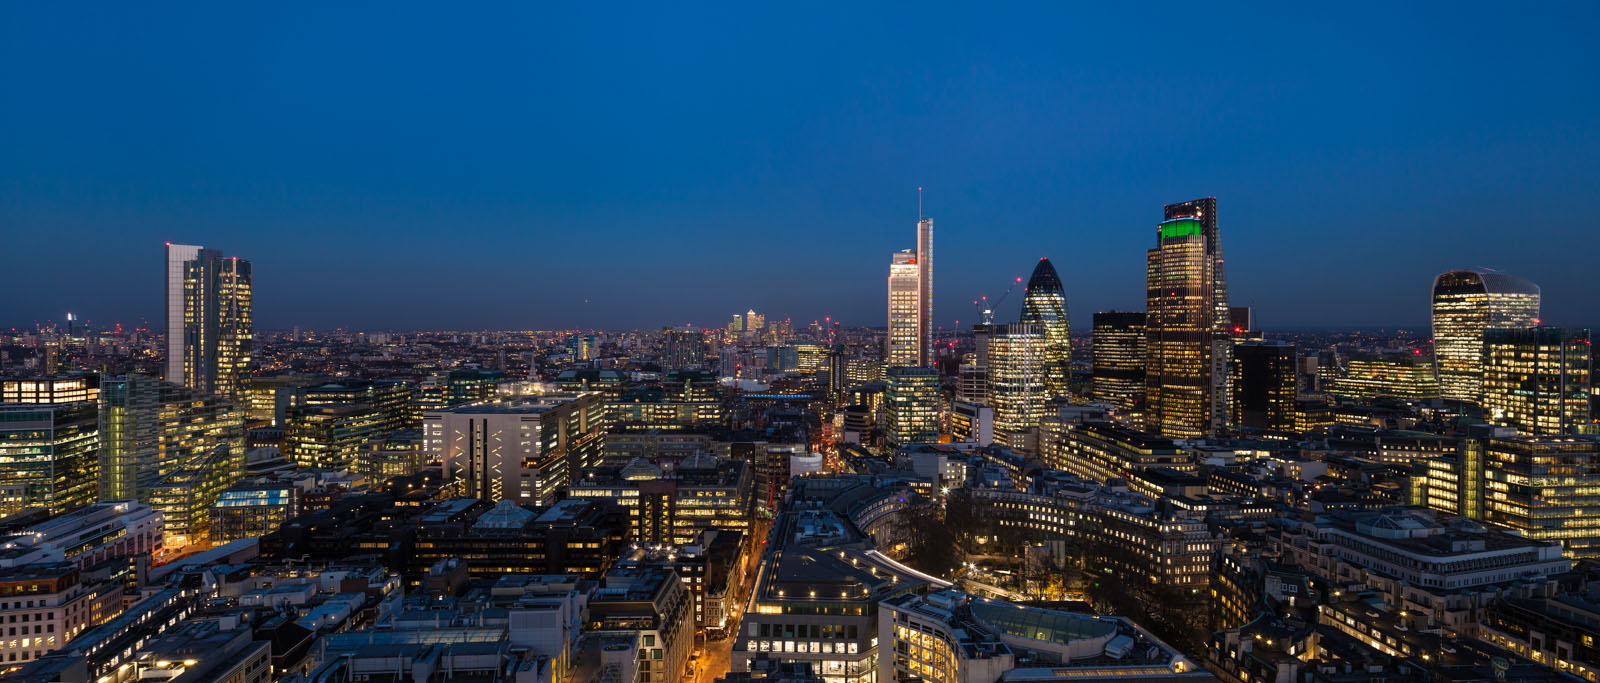 City of London aerial view at dusk